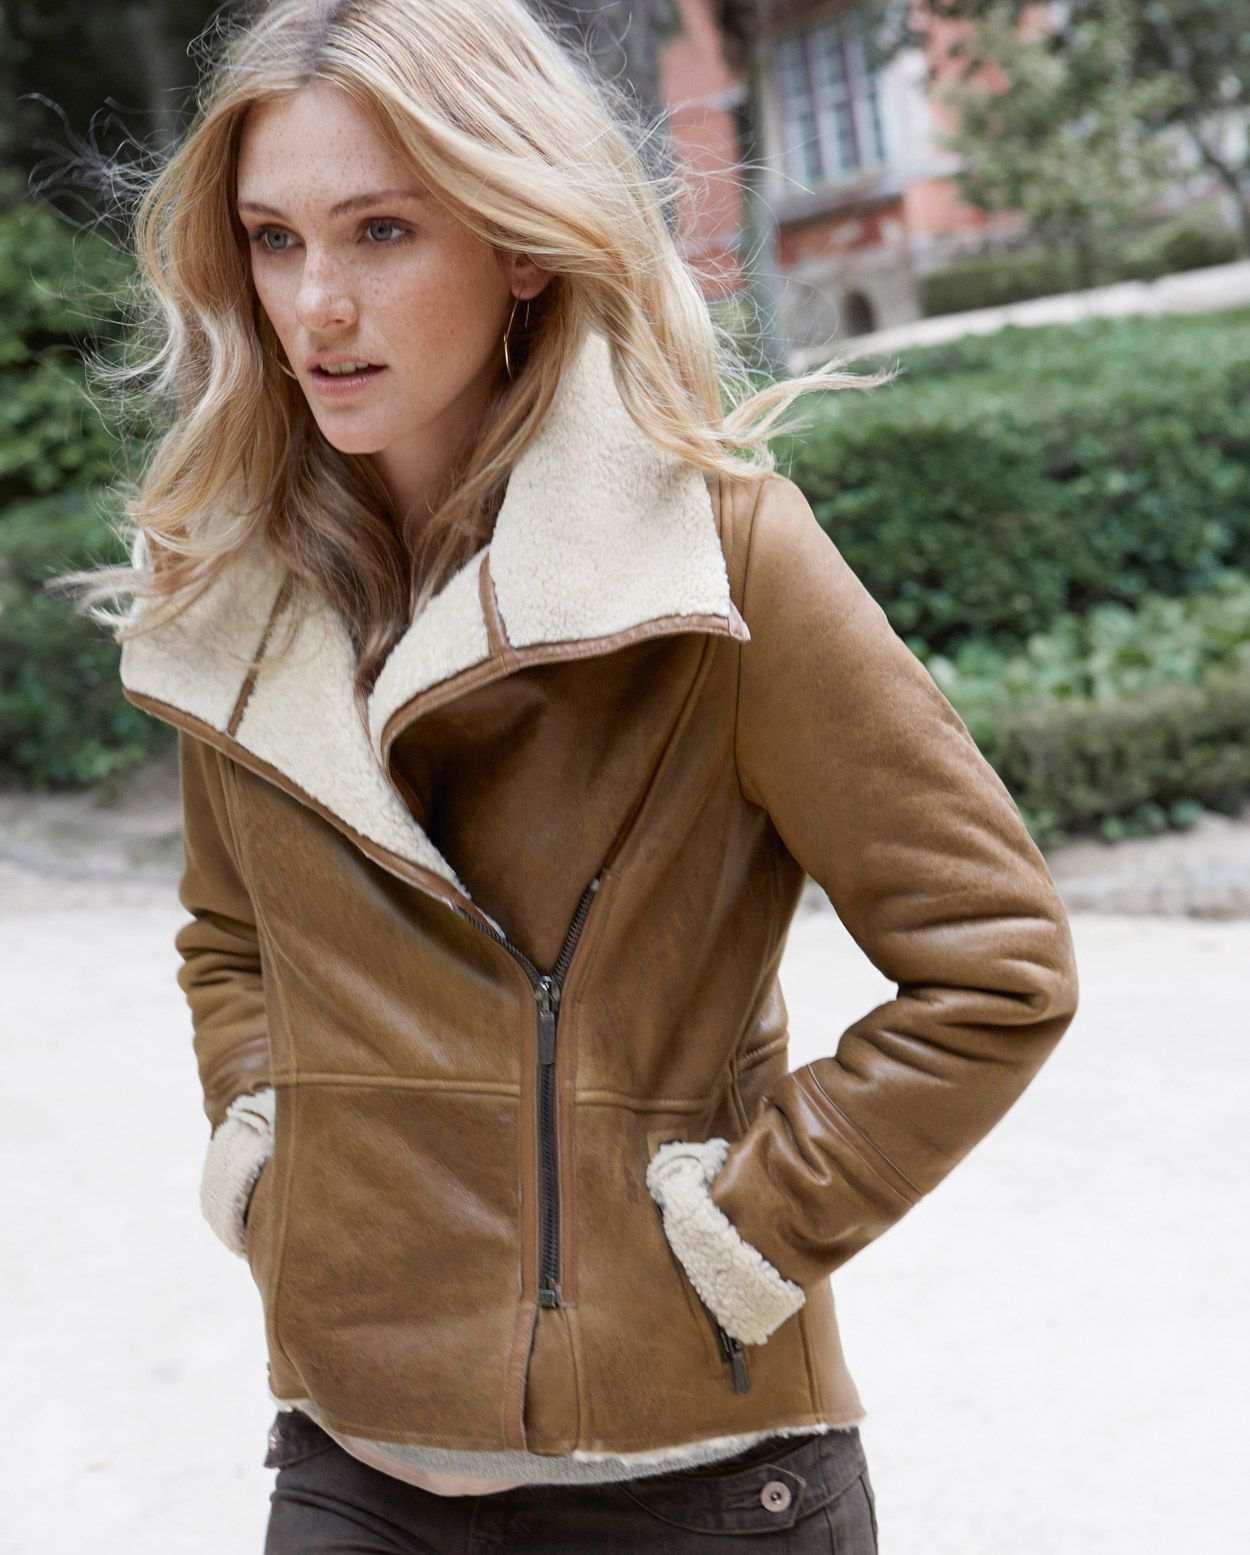 Jackson sheepskin jacket | Sheepskin jackets | Pinterest